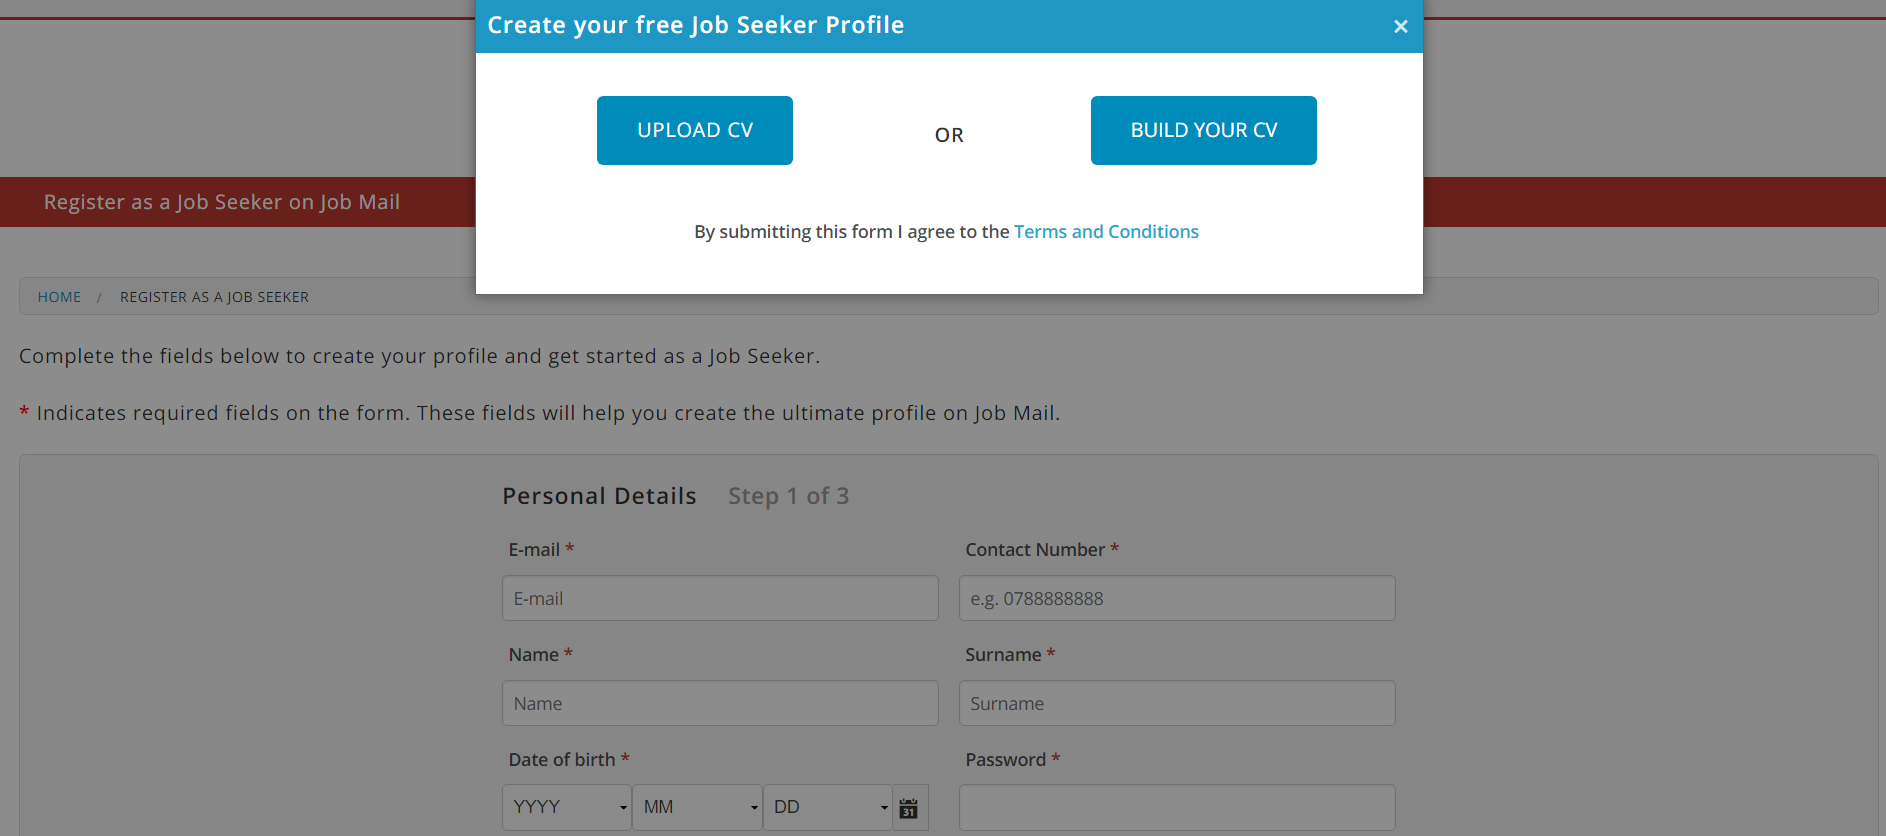 Create a FREE Job Seeker Profile on Job Mail